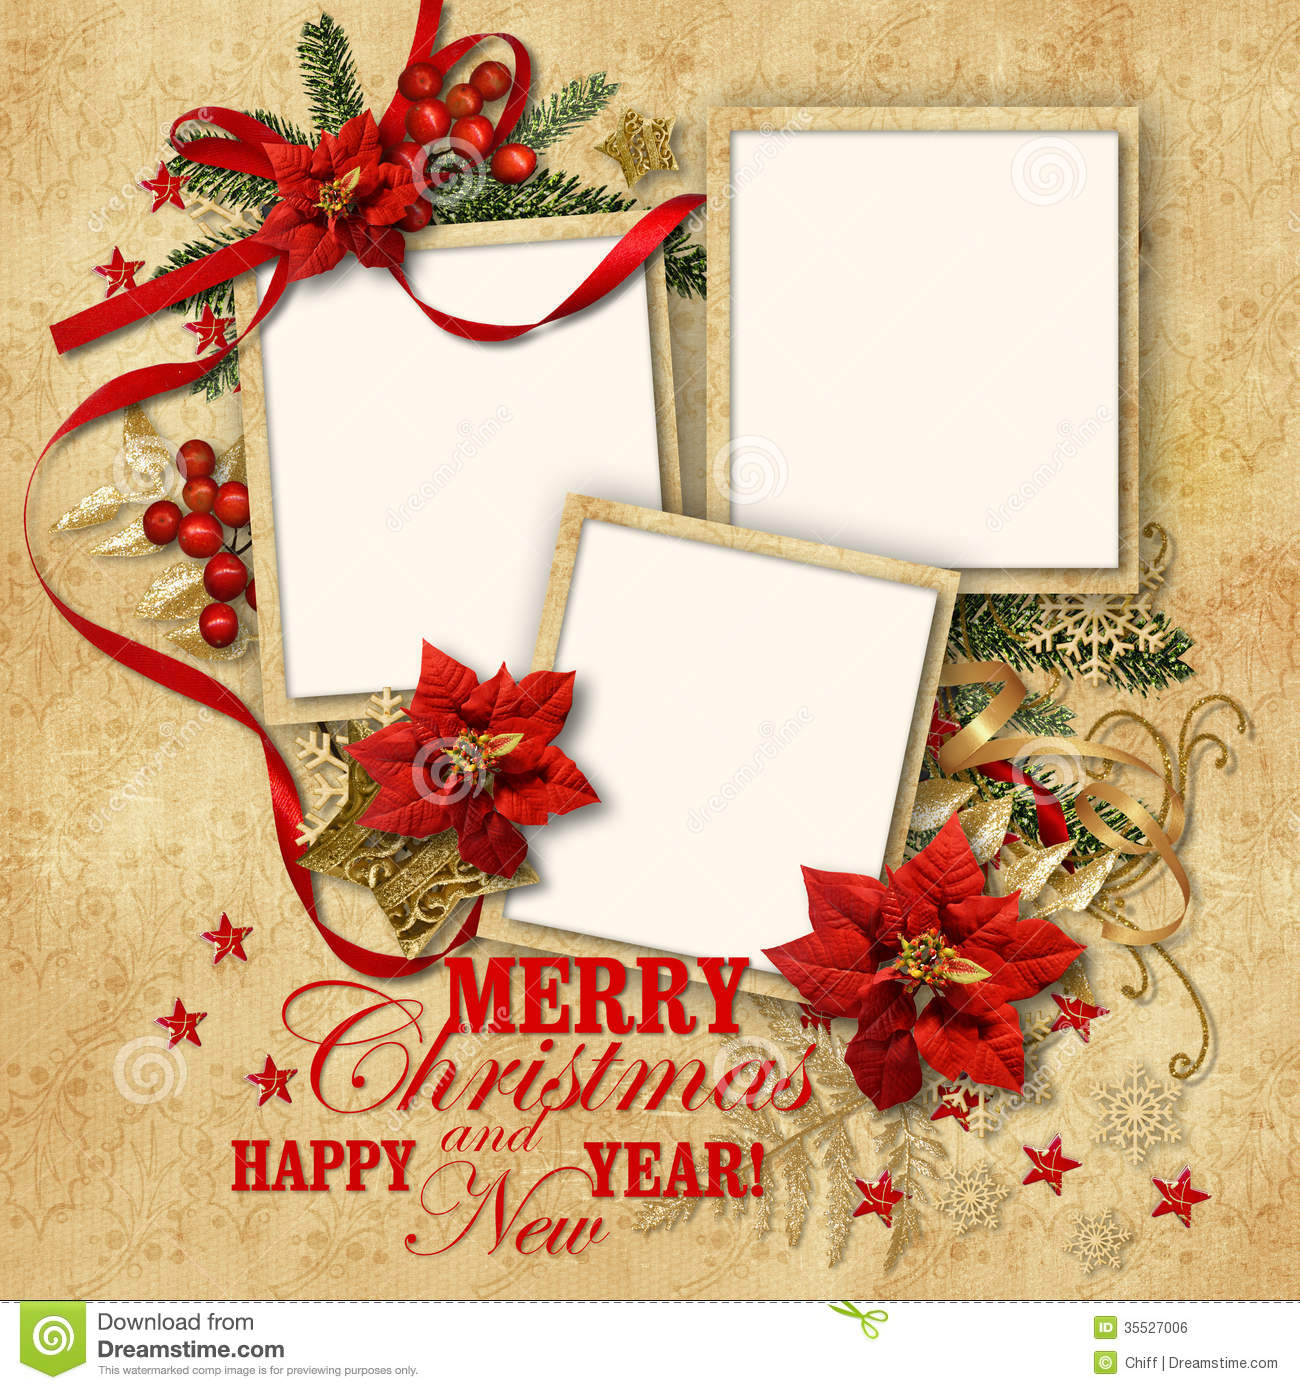 christmas nice vintage background with frame for family illustration